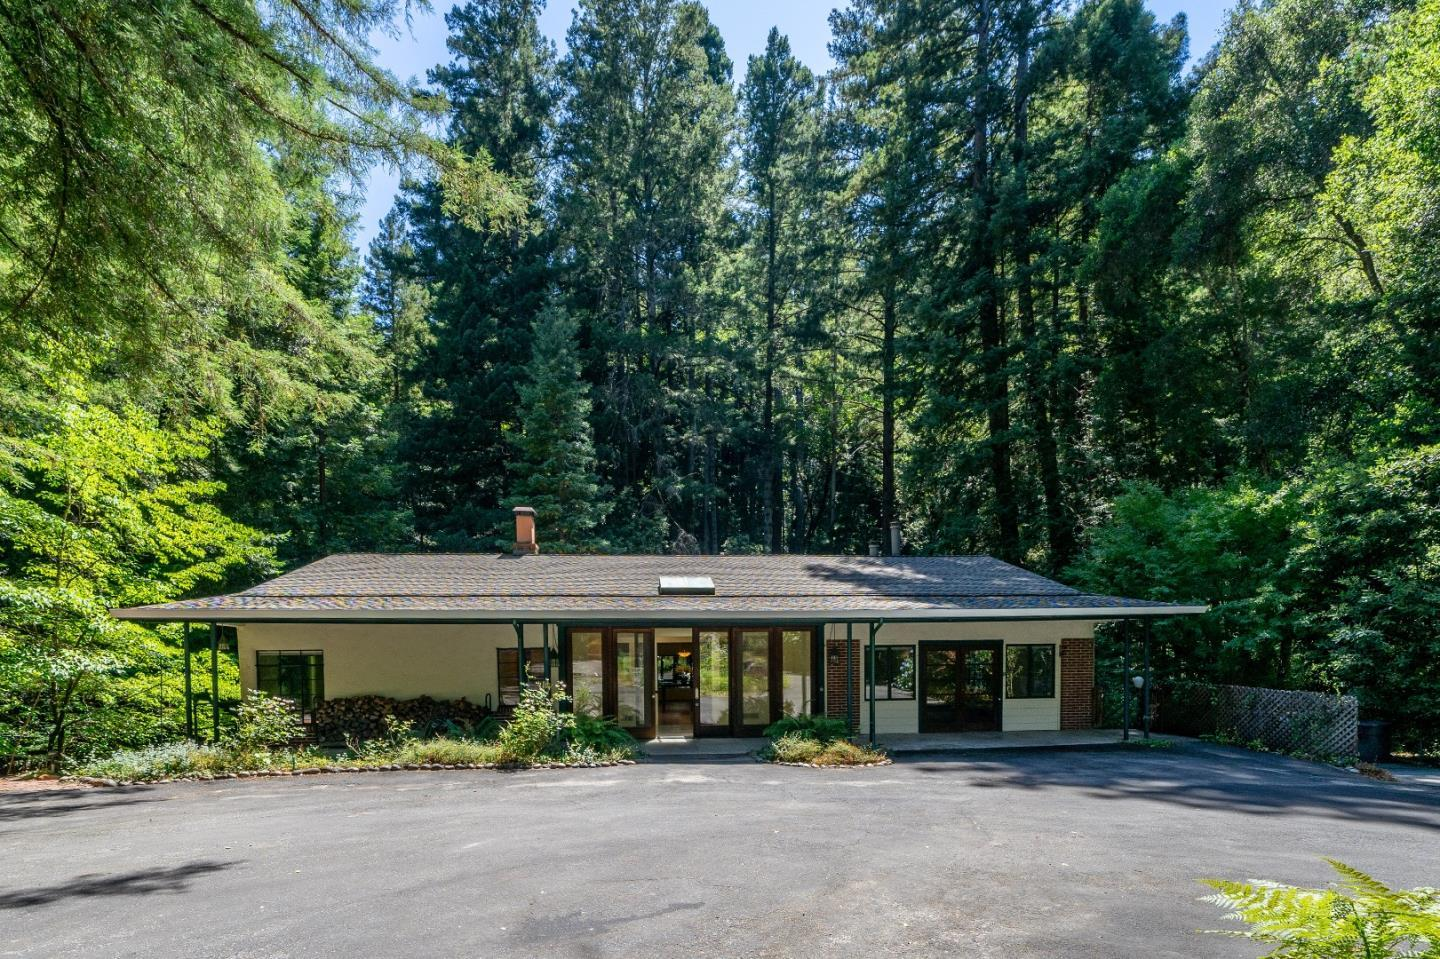 Inviting Retreat in the Redwoods